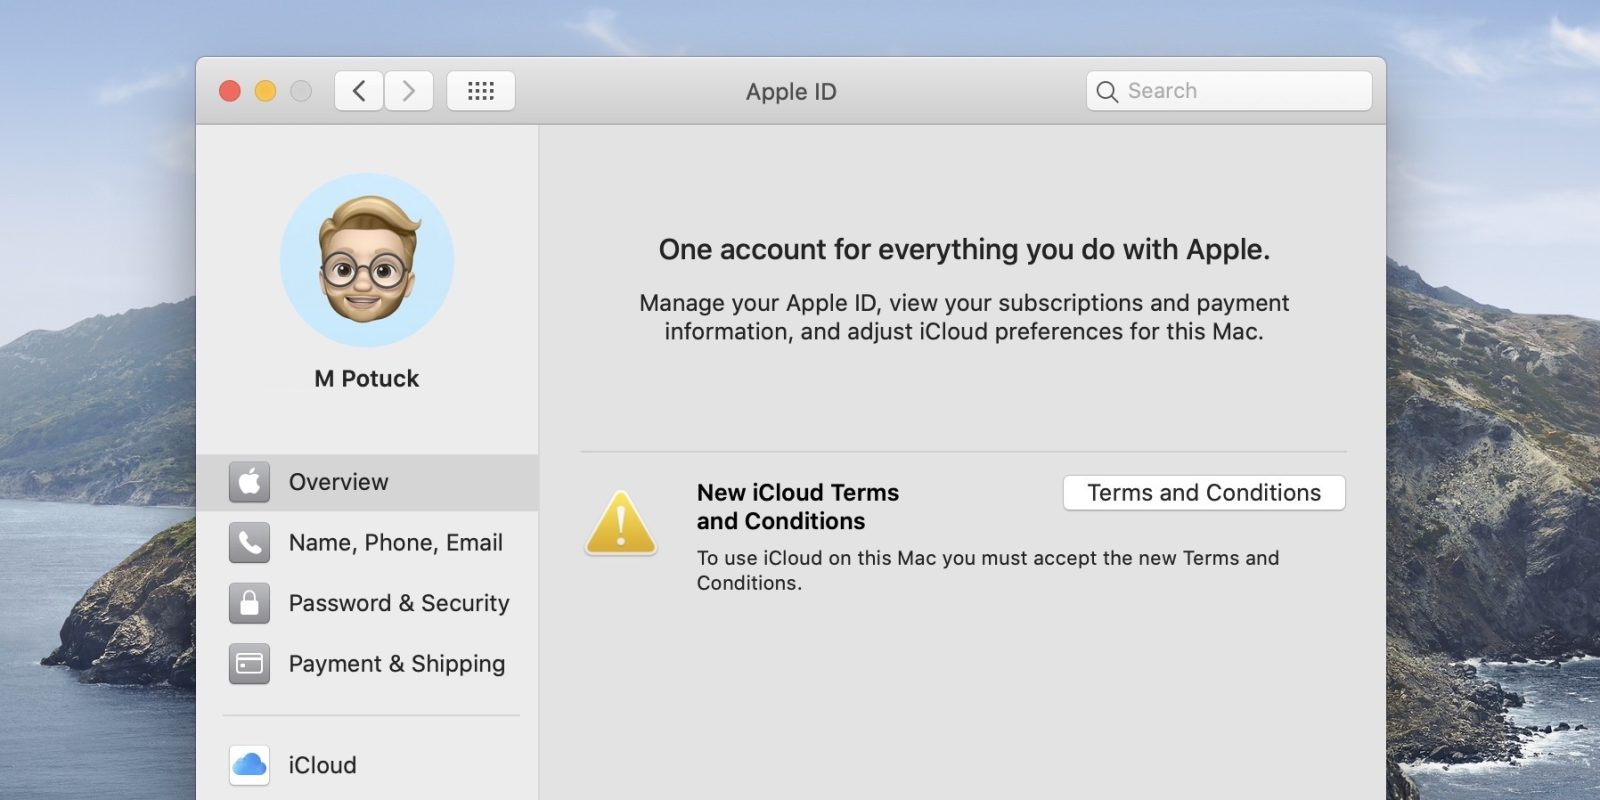 How to fix iCloud terms and conditions bug in macOS Catalina